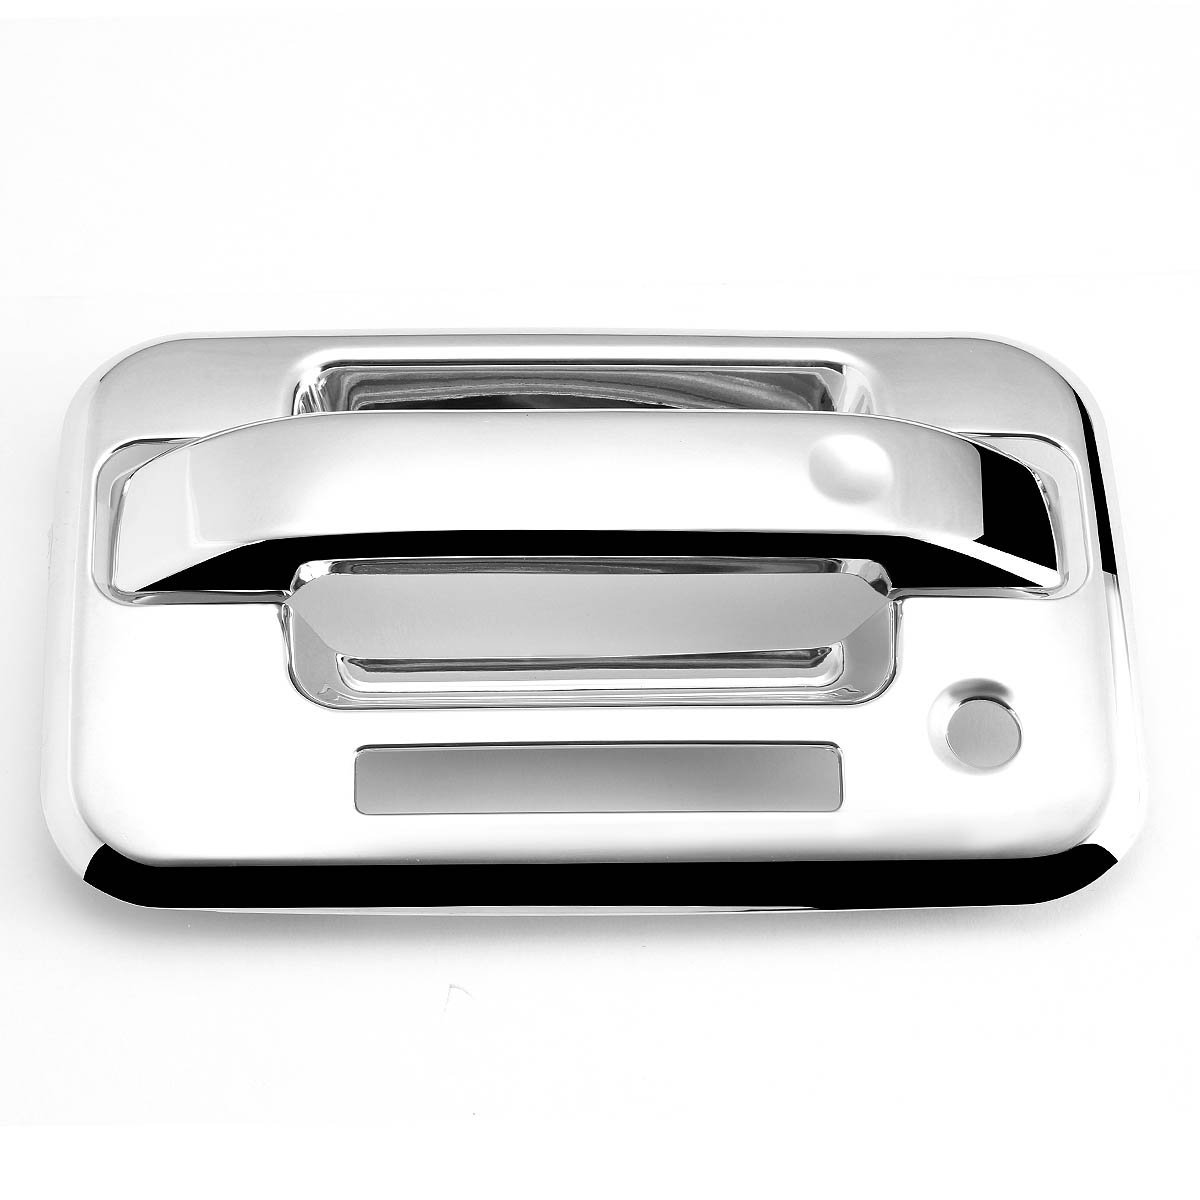 04 14 Ford F150 4dr 4pcs Exterior Door Handle Cover With Keypad Chrome By Auto Dynasty